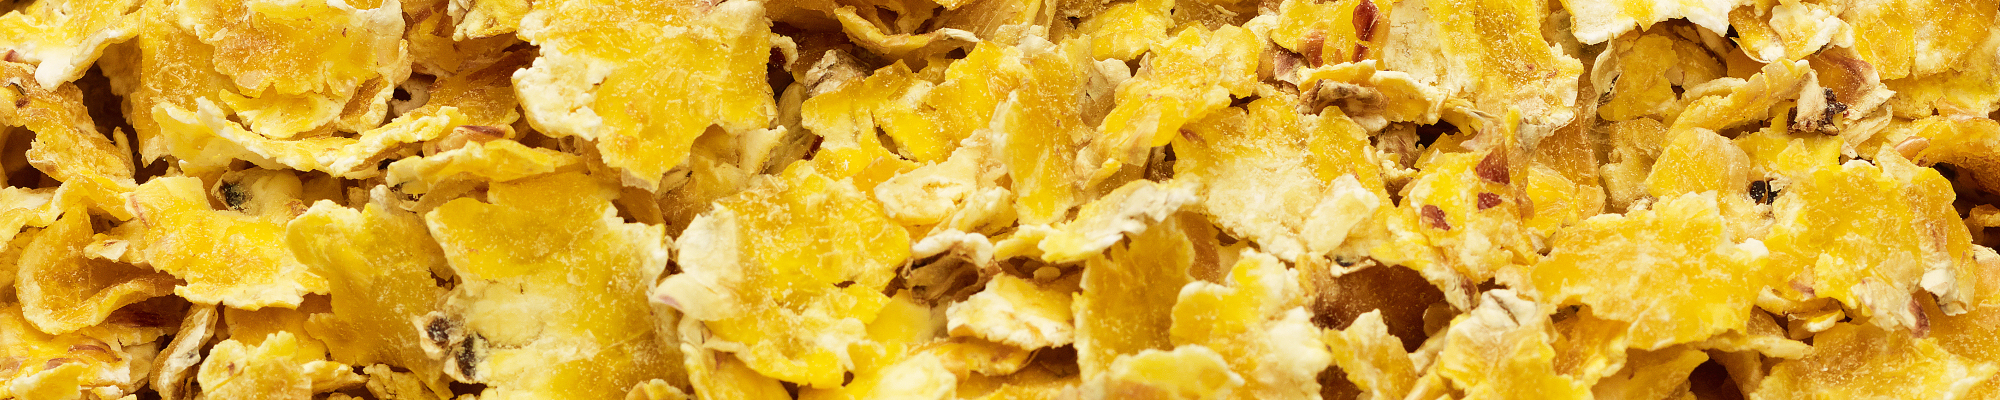 More milk, lower costs and healthy cows with gelatinized corn flakes